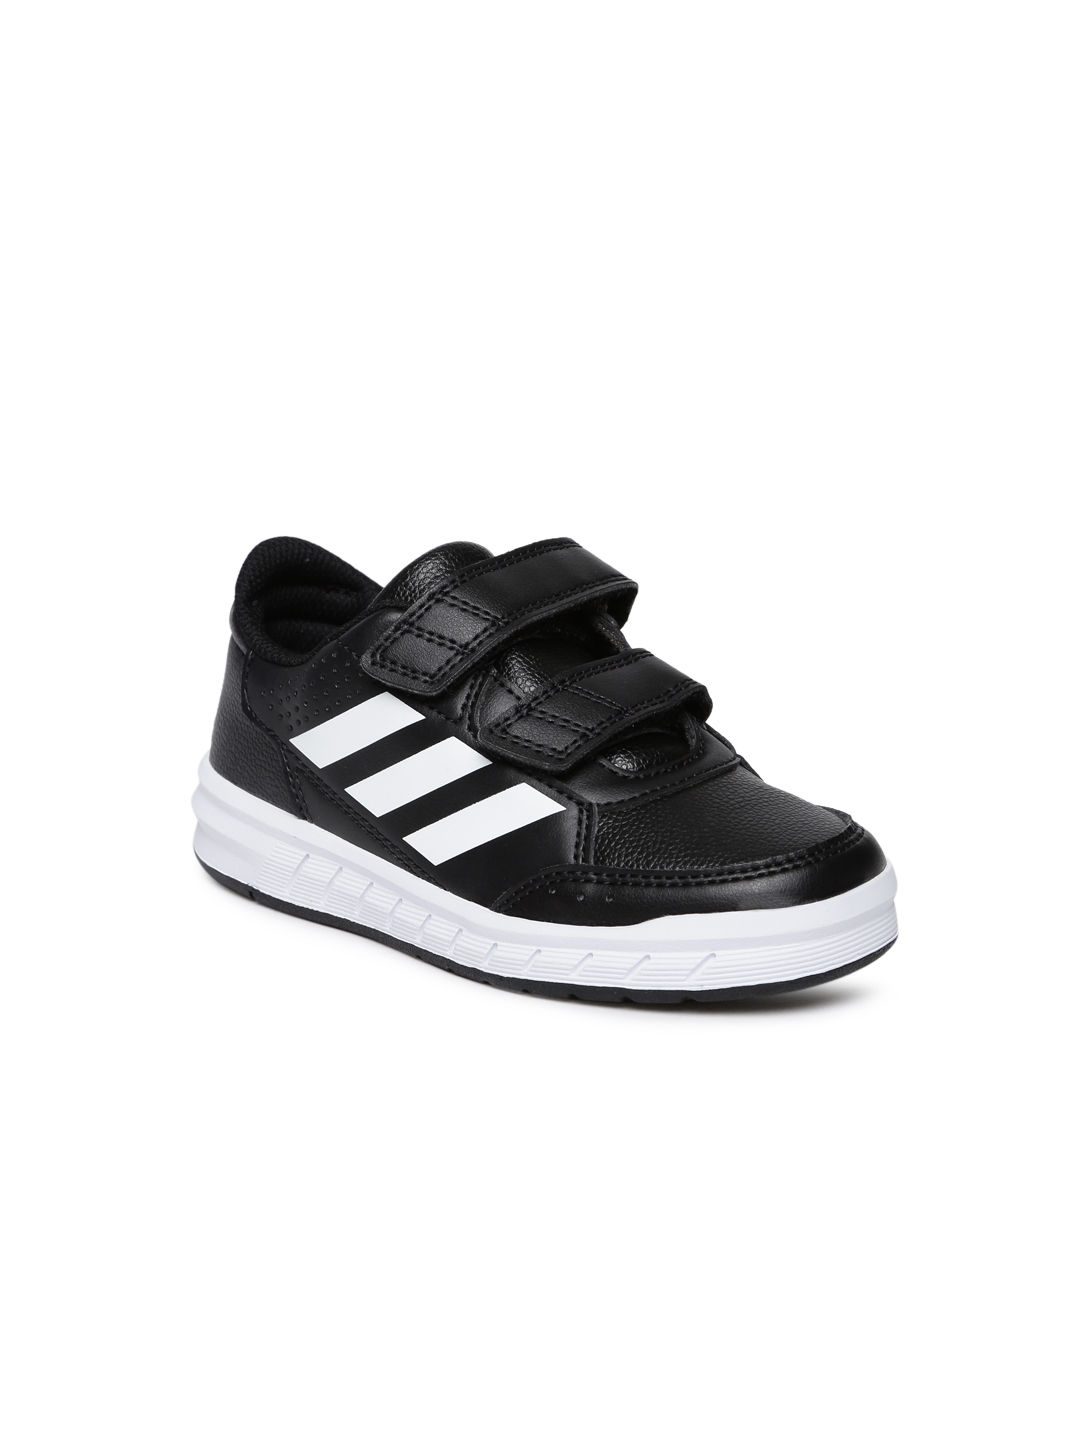 official photos 4aaf8 d9097 ADIDAS Kids Black ALTASPORT CF K Training Shoes